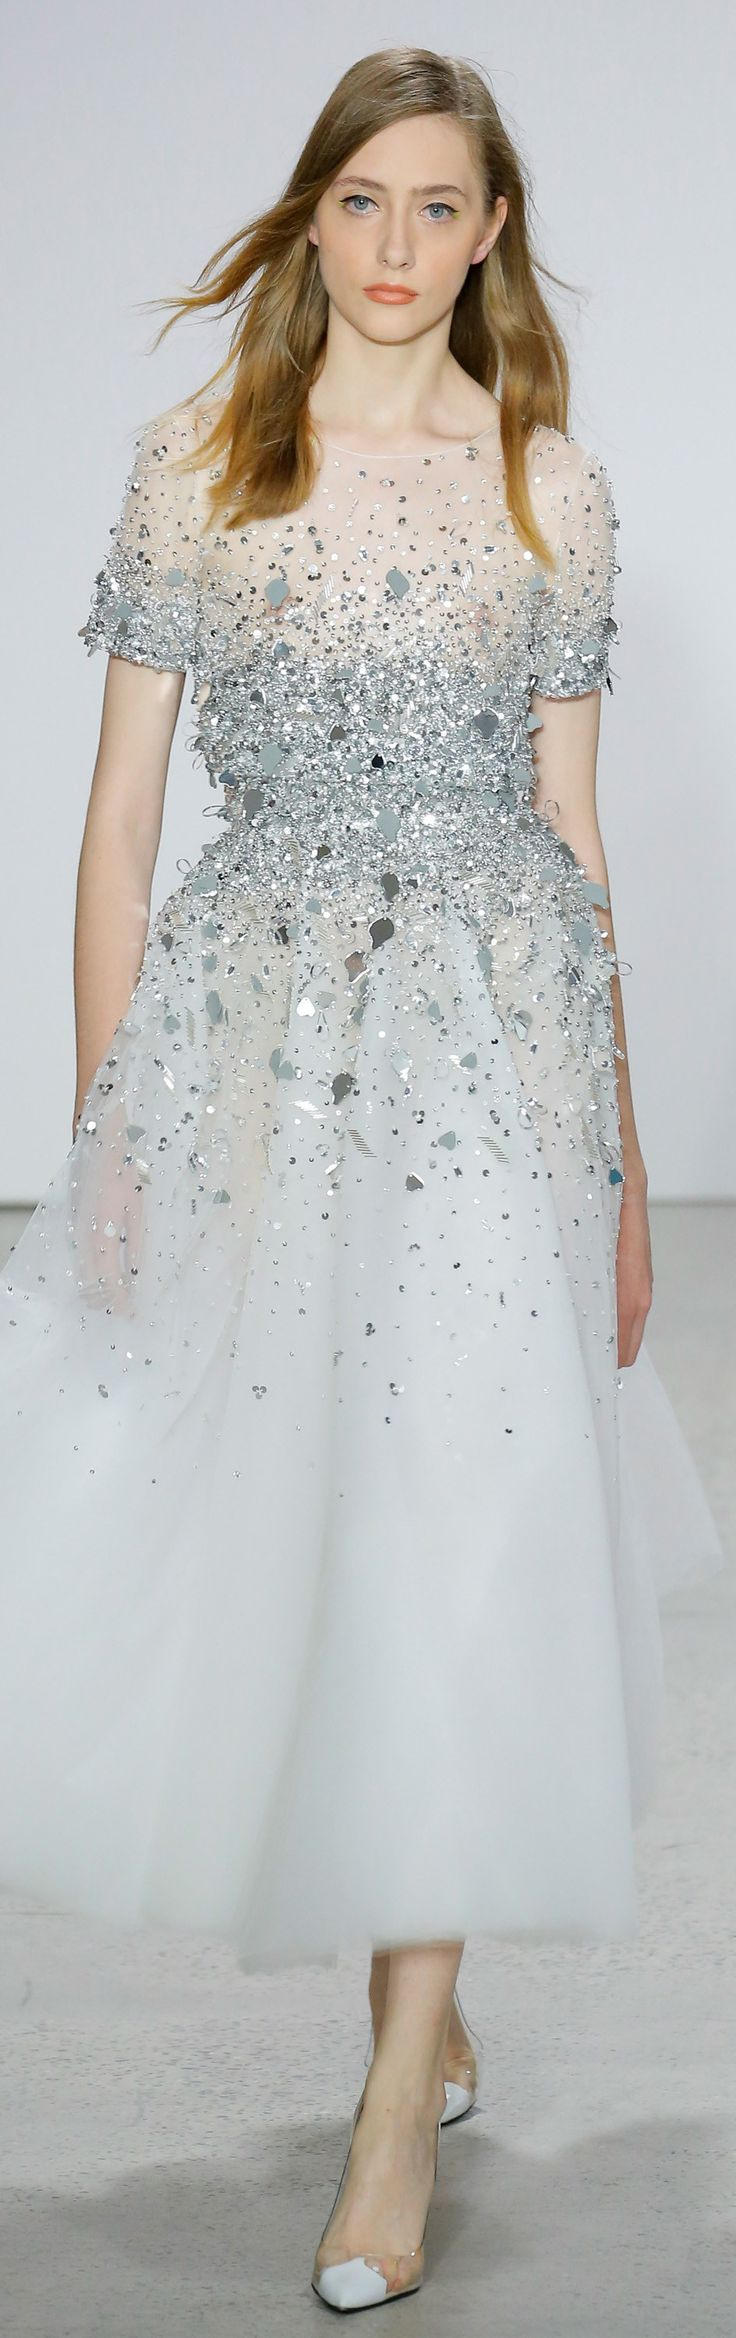 Glittering white tulle dress... floating in the air